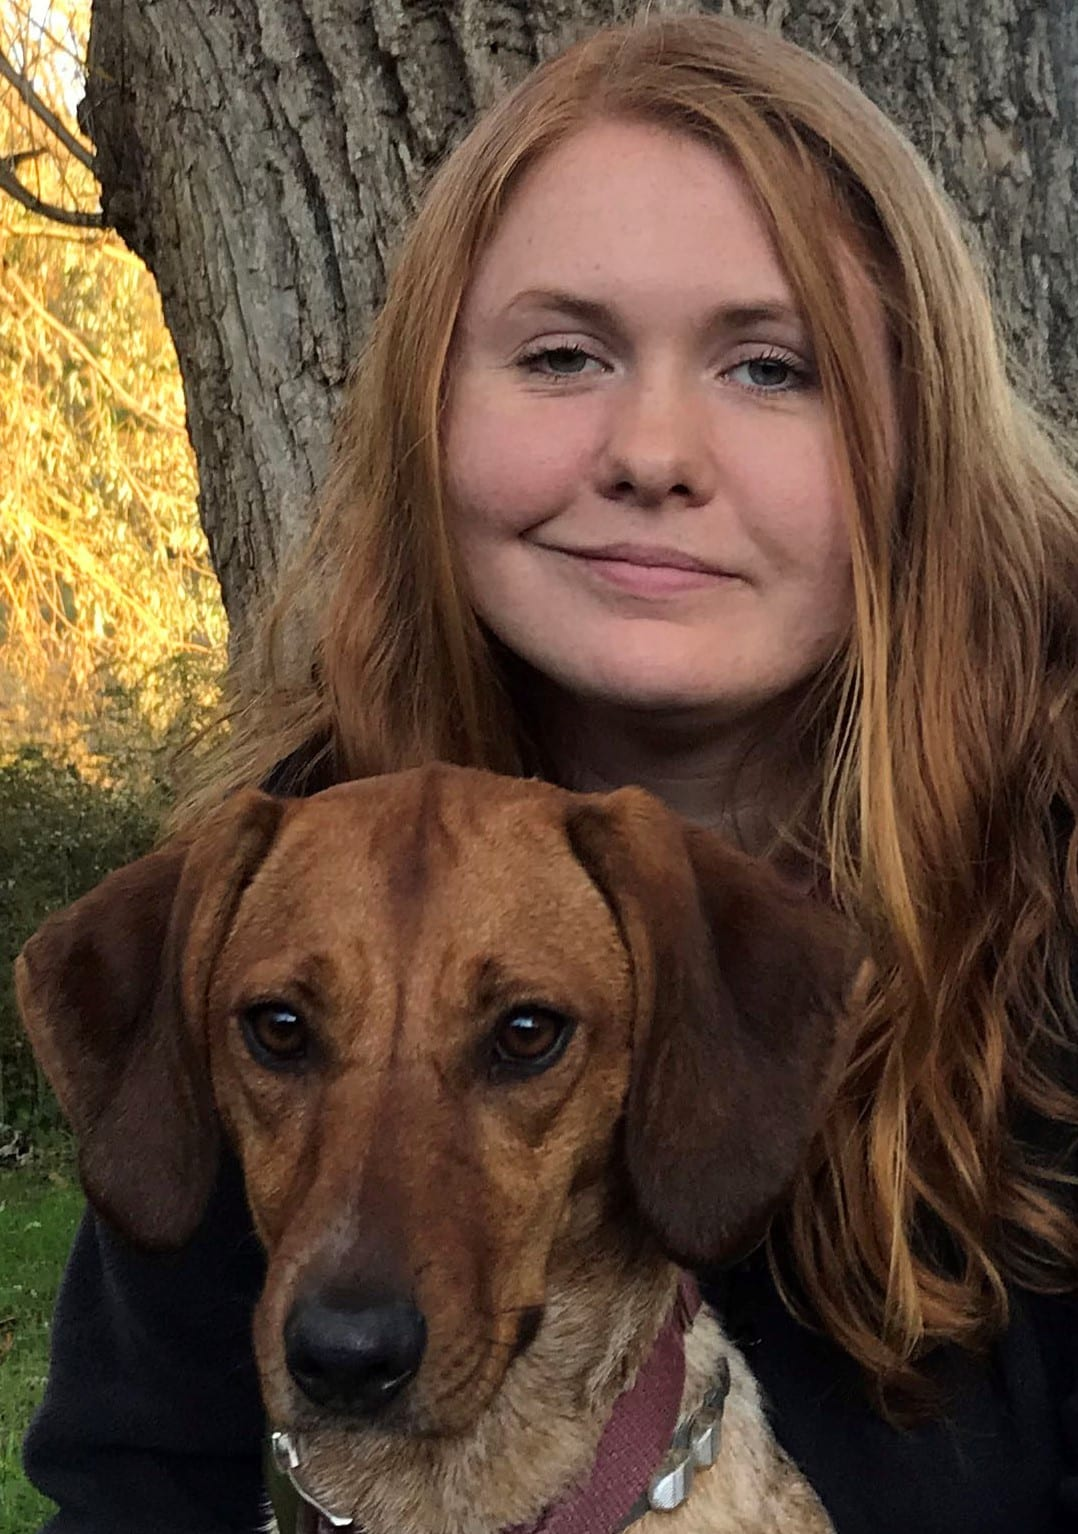 Anita Dowling – Licensed Vet Tech and Animal Care Technician